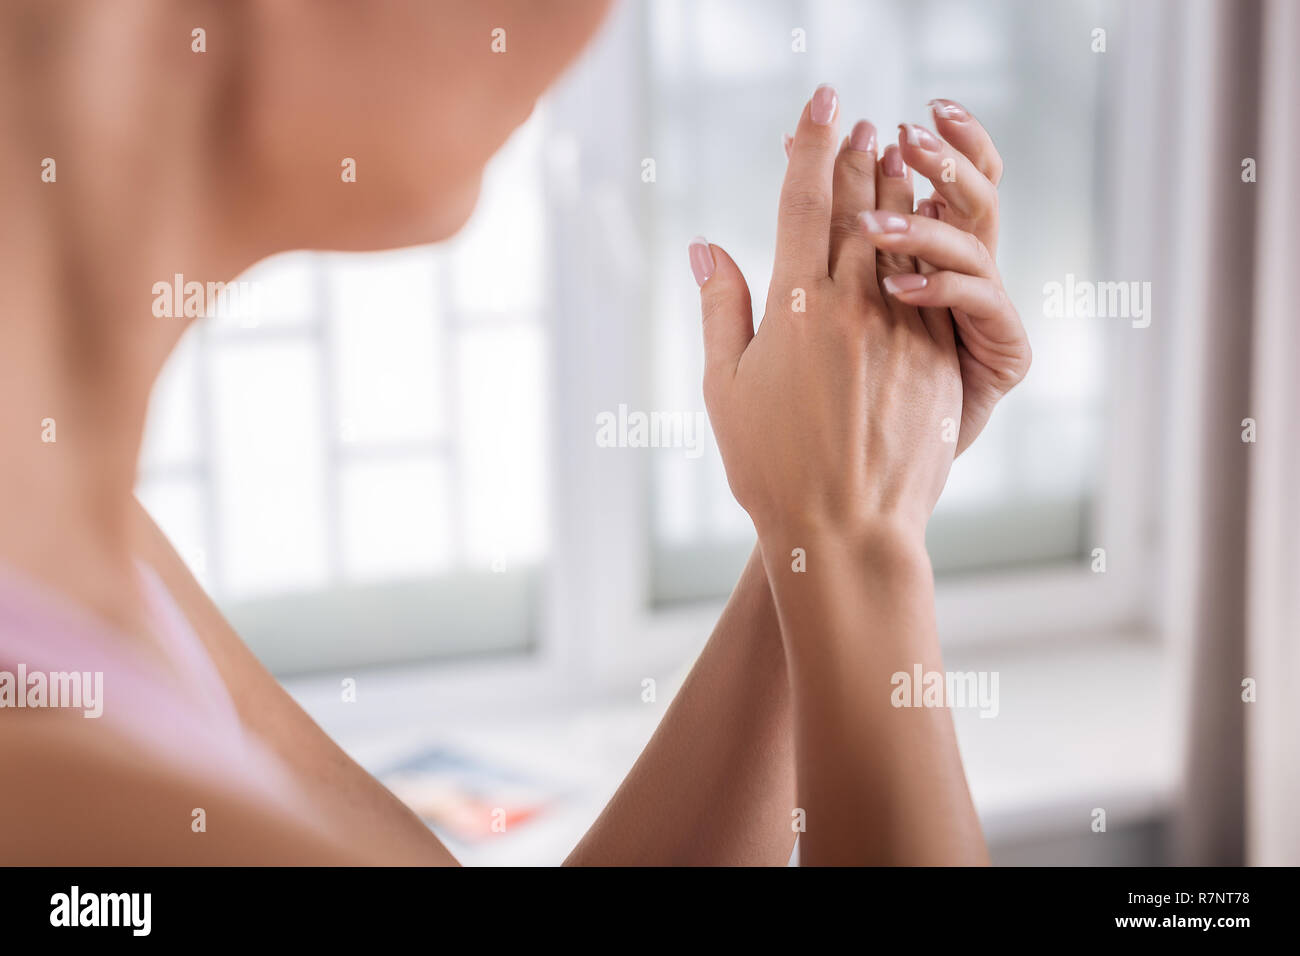 Beautiful woman with sensitive skin putting some cream on her hands - Stock Image